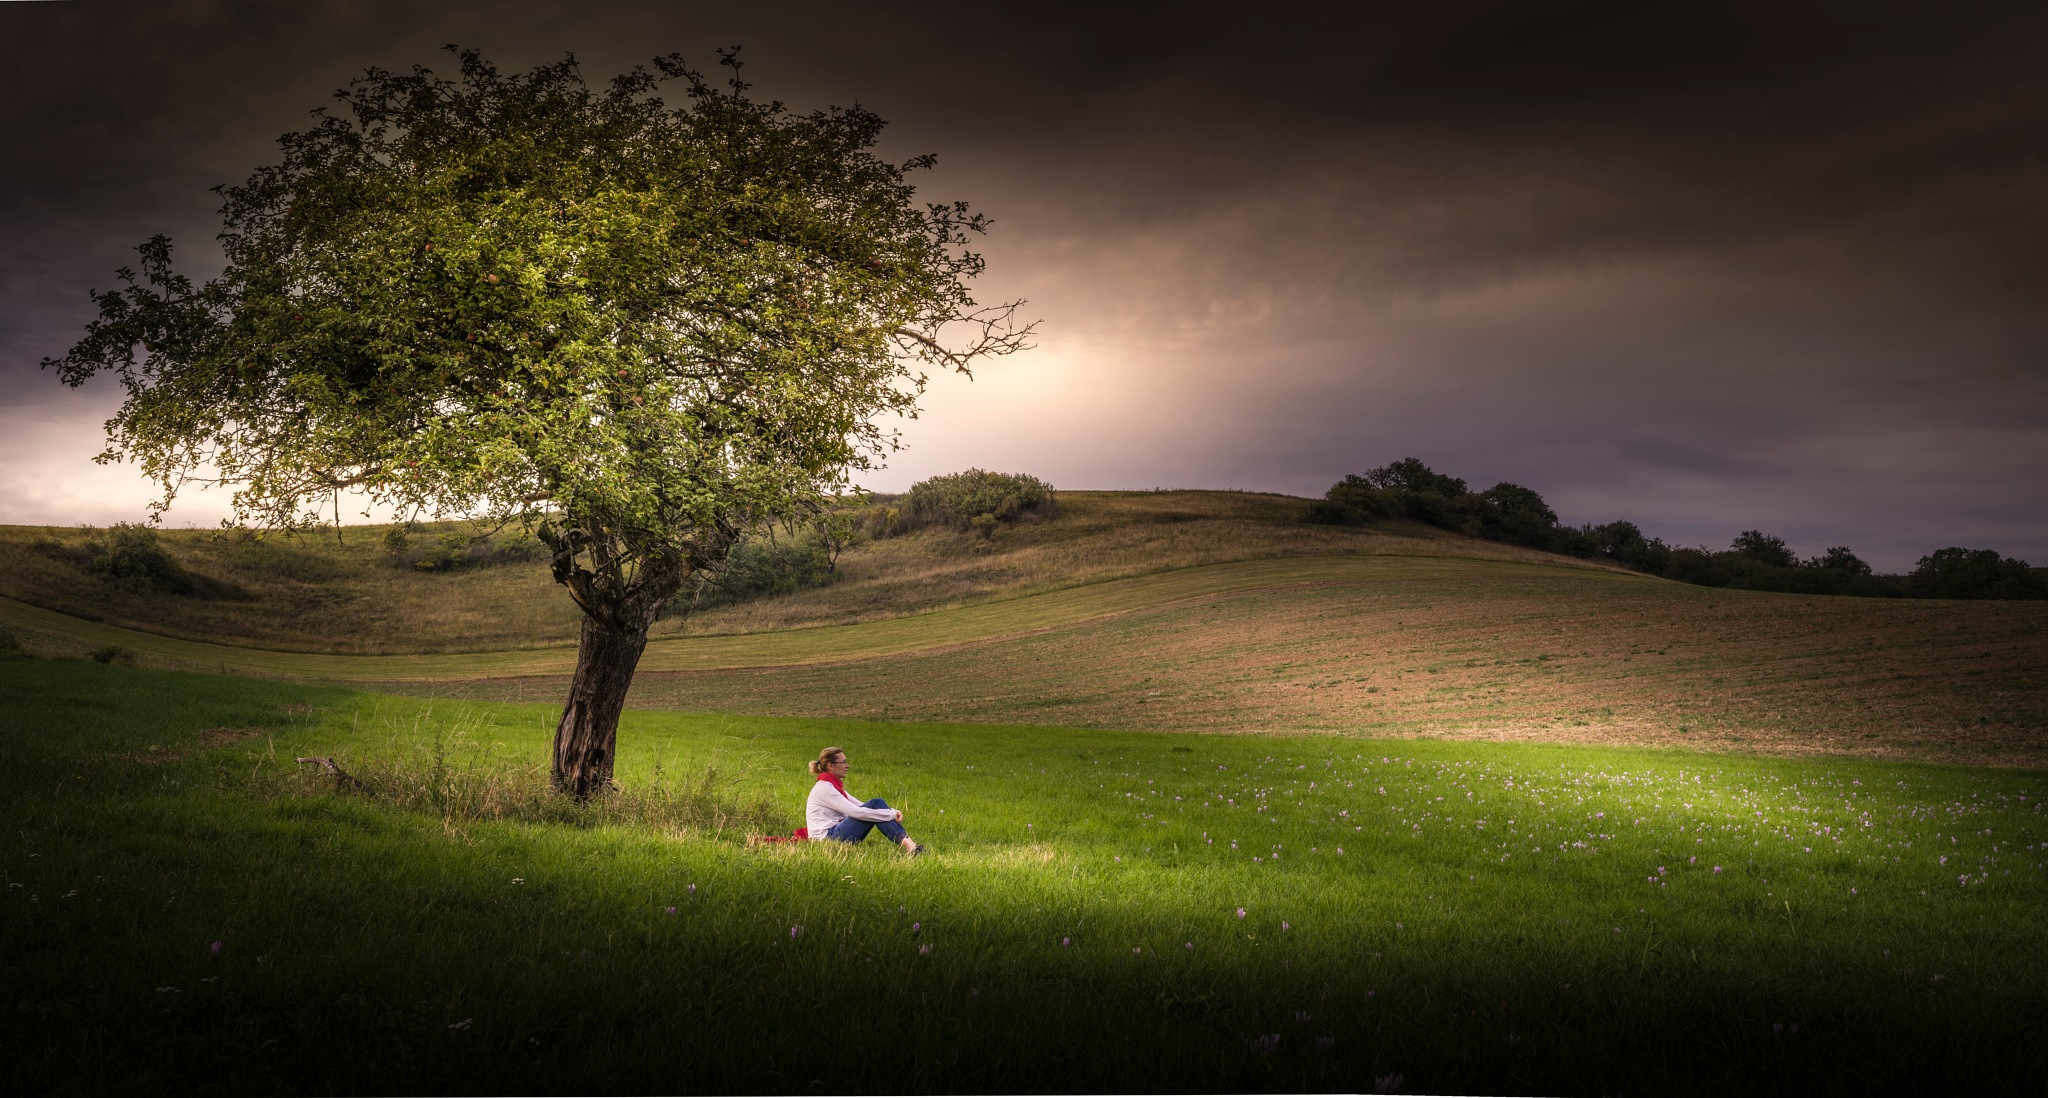 Evening under the apple tree by MENGAart